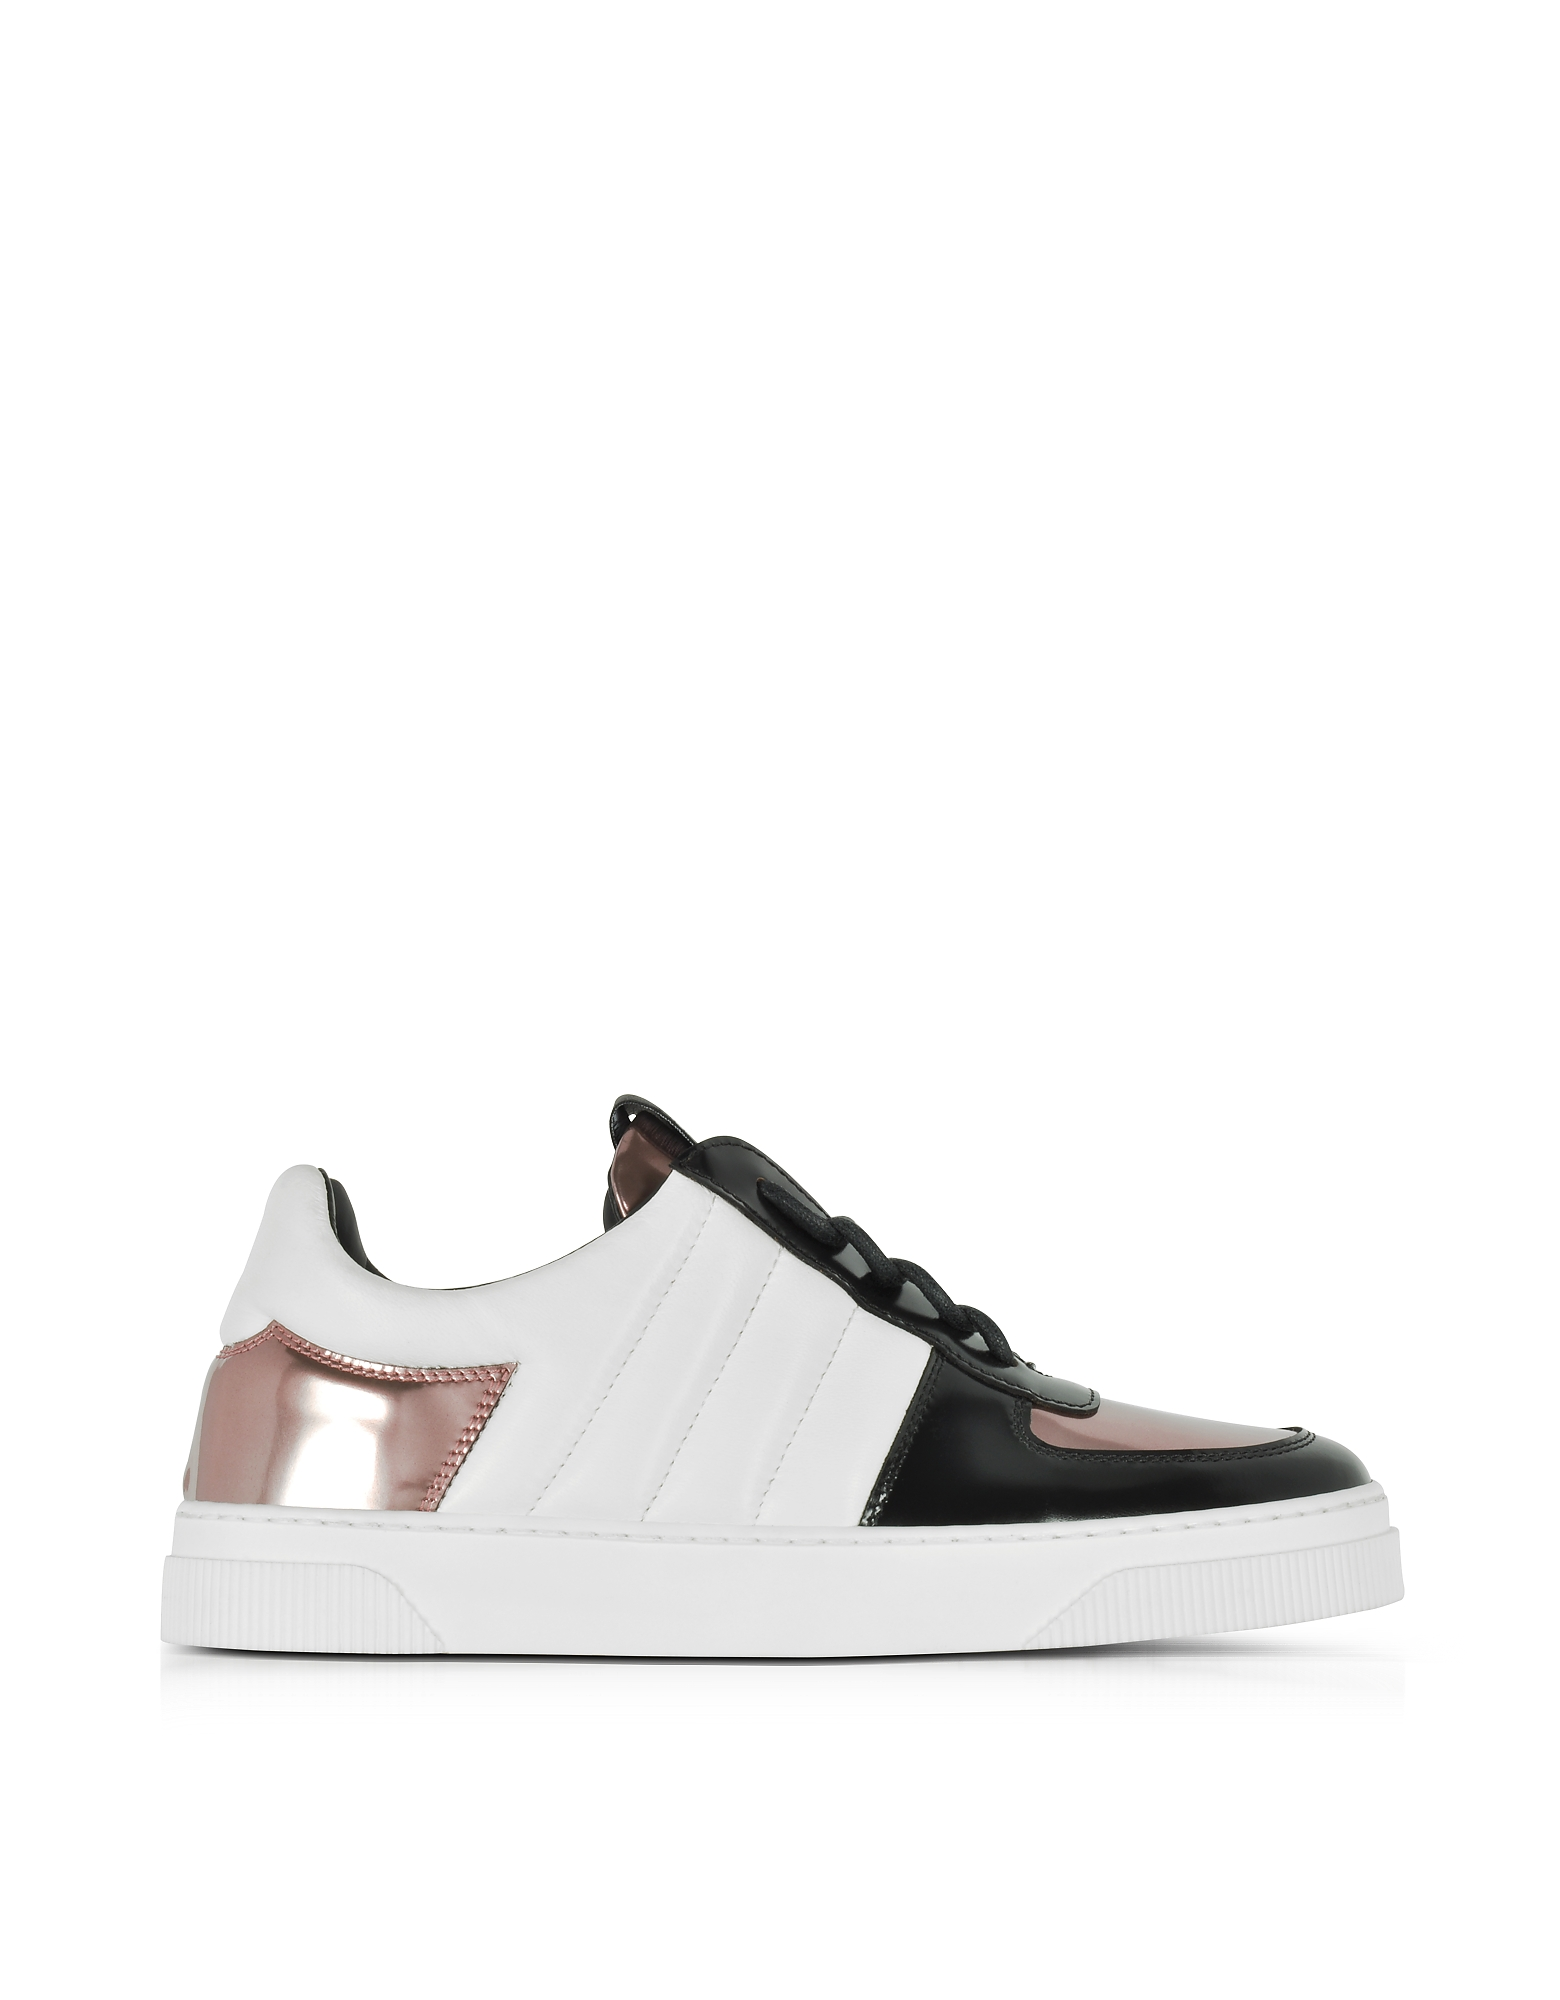 Proenza Schouler Shoes, Black, White and Rose Gold Laminated Leather Sneakers